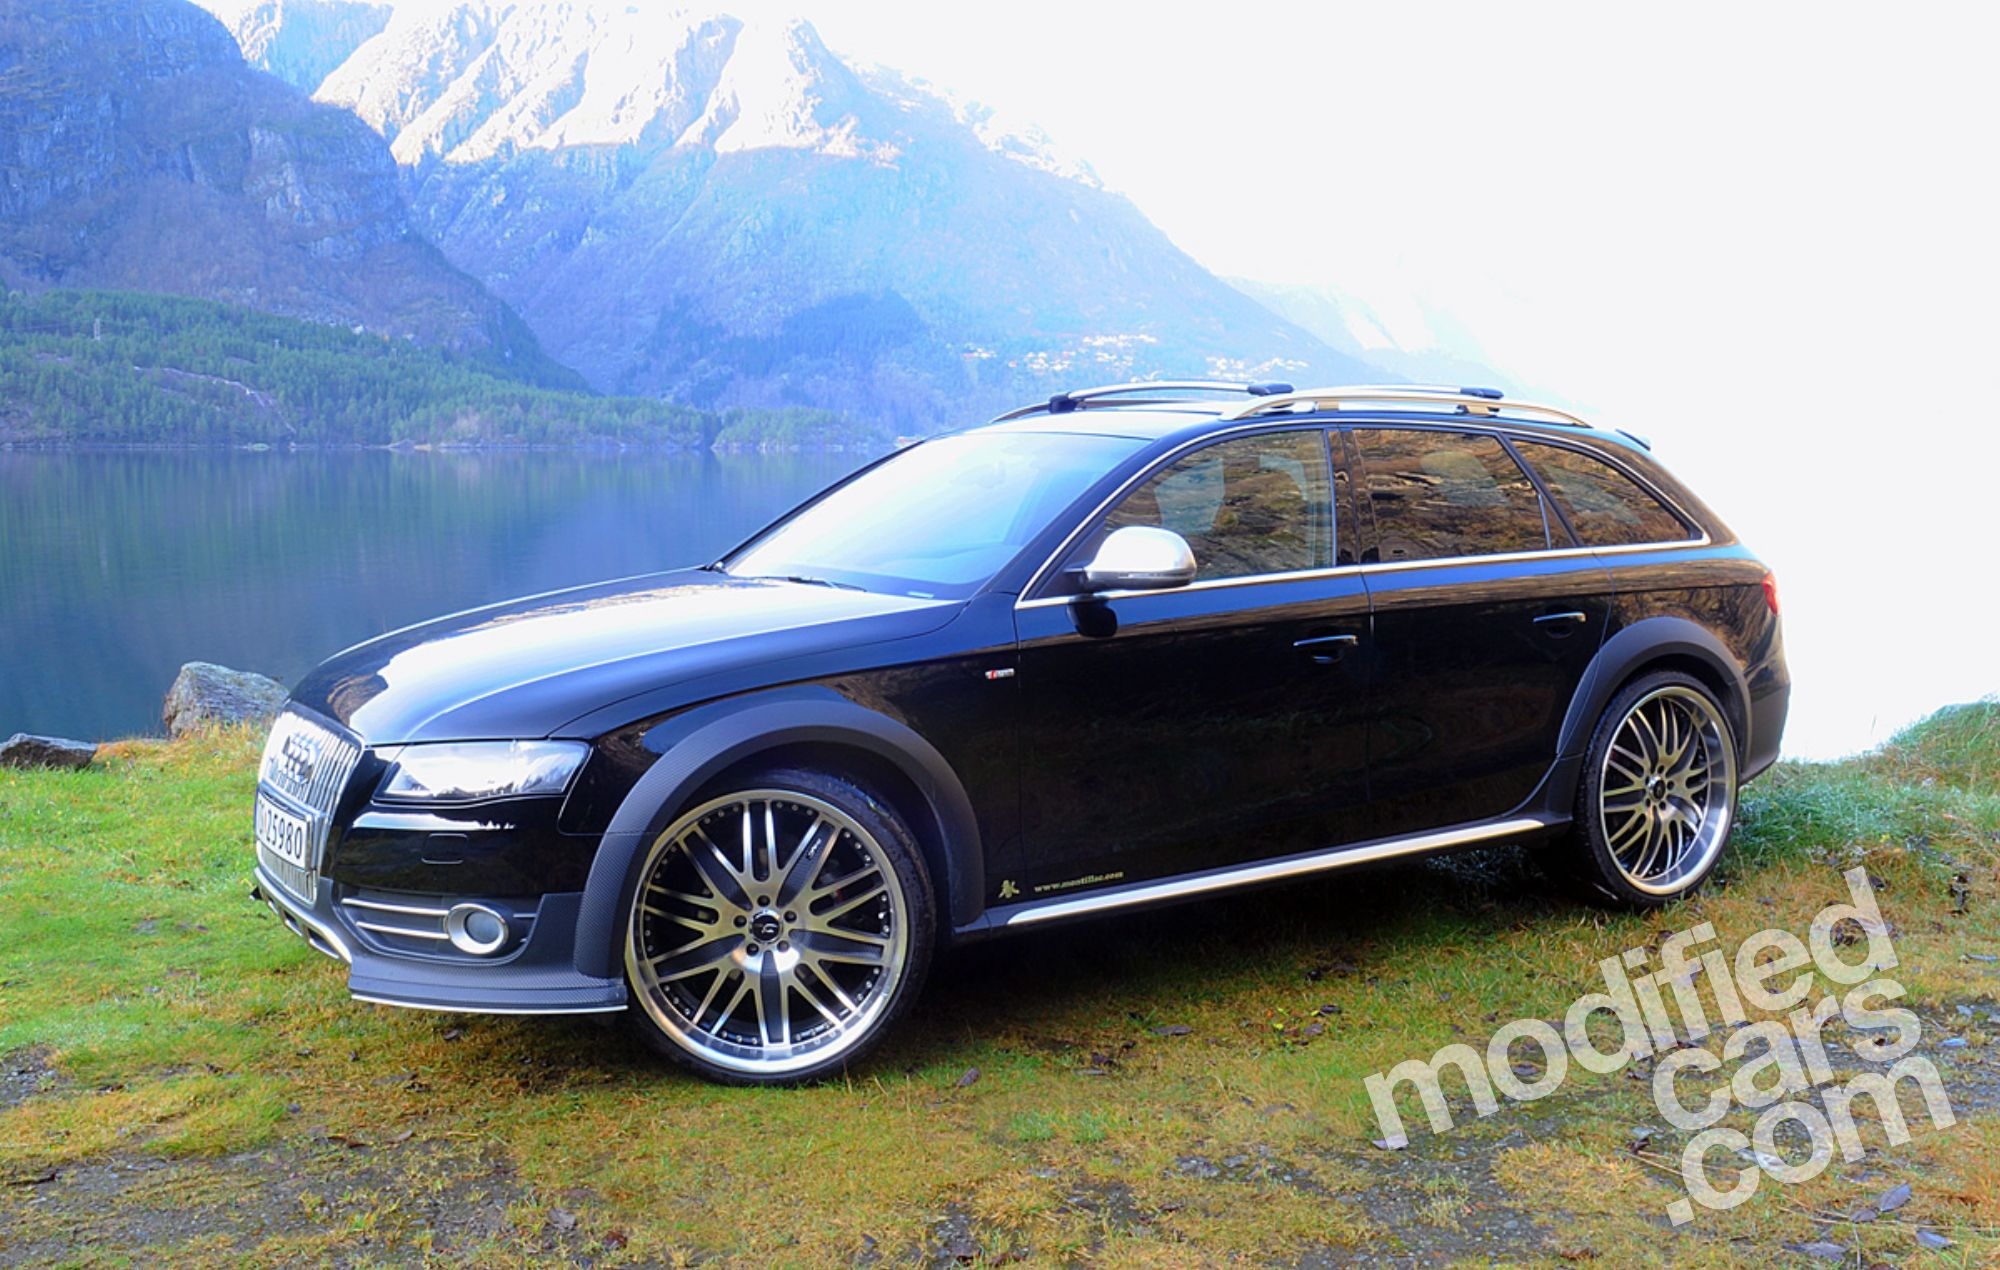 Audi A4 Allroad Tuning Carsmoto Audi Cars и Small Luxury Cars